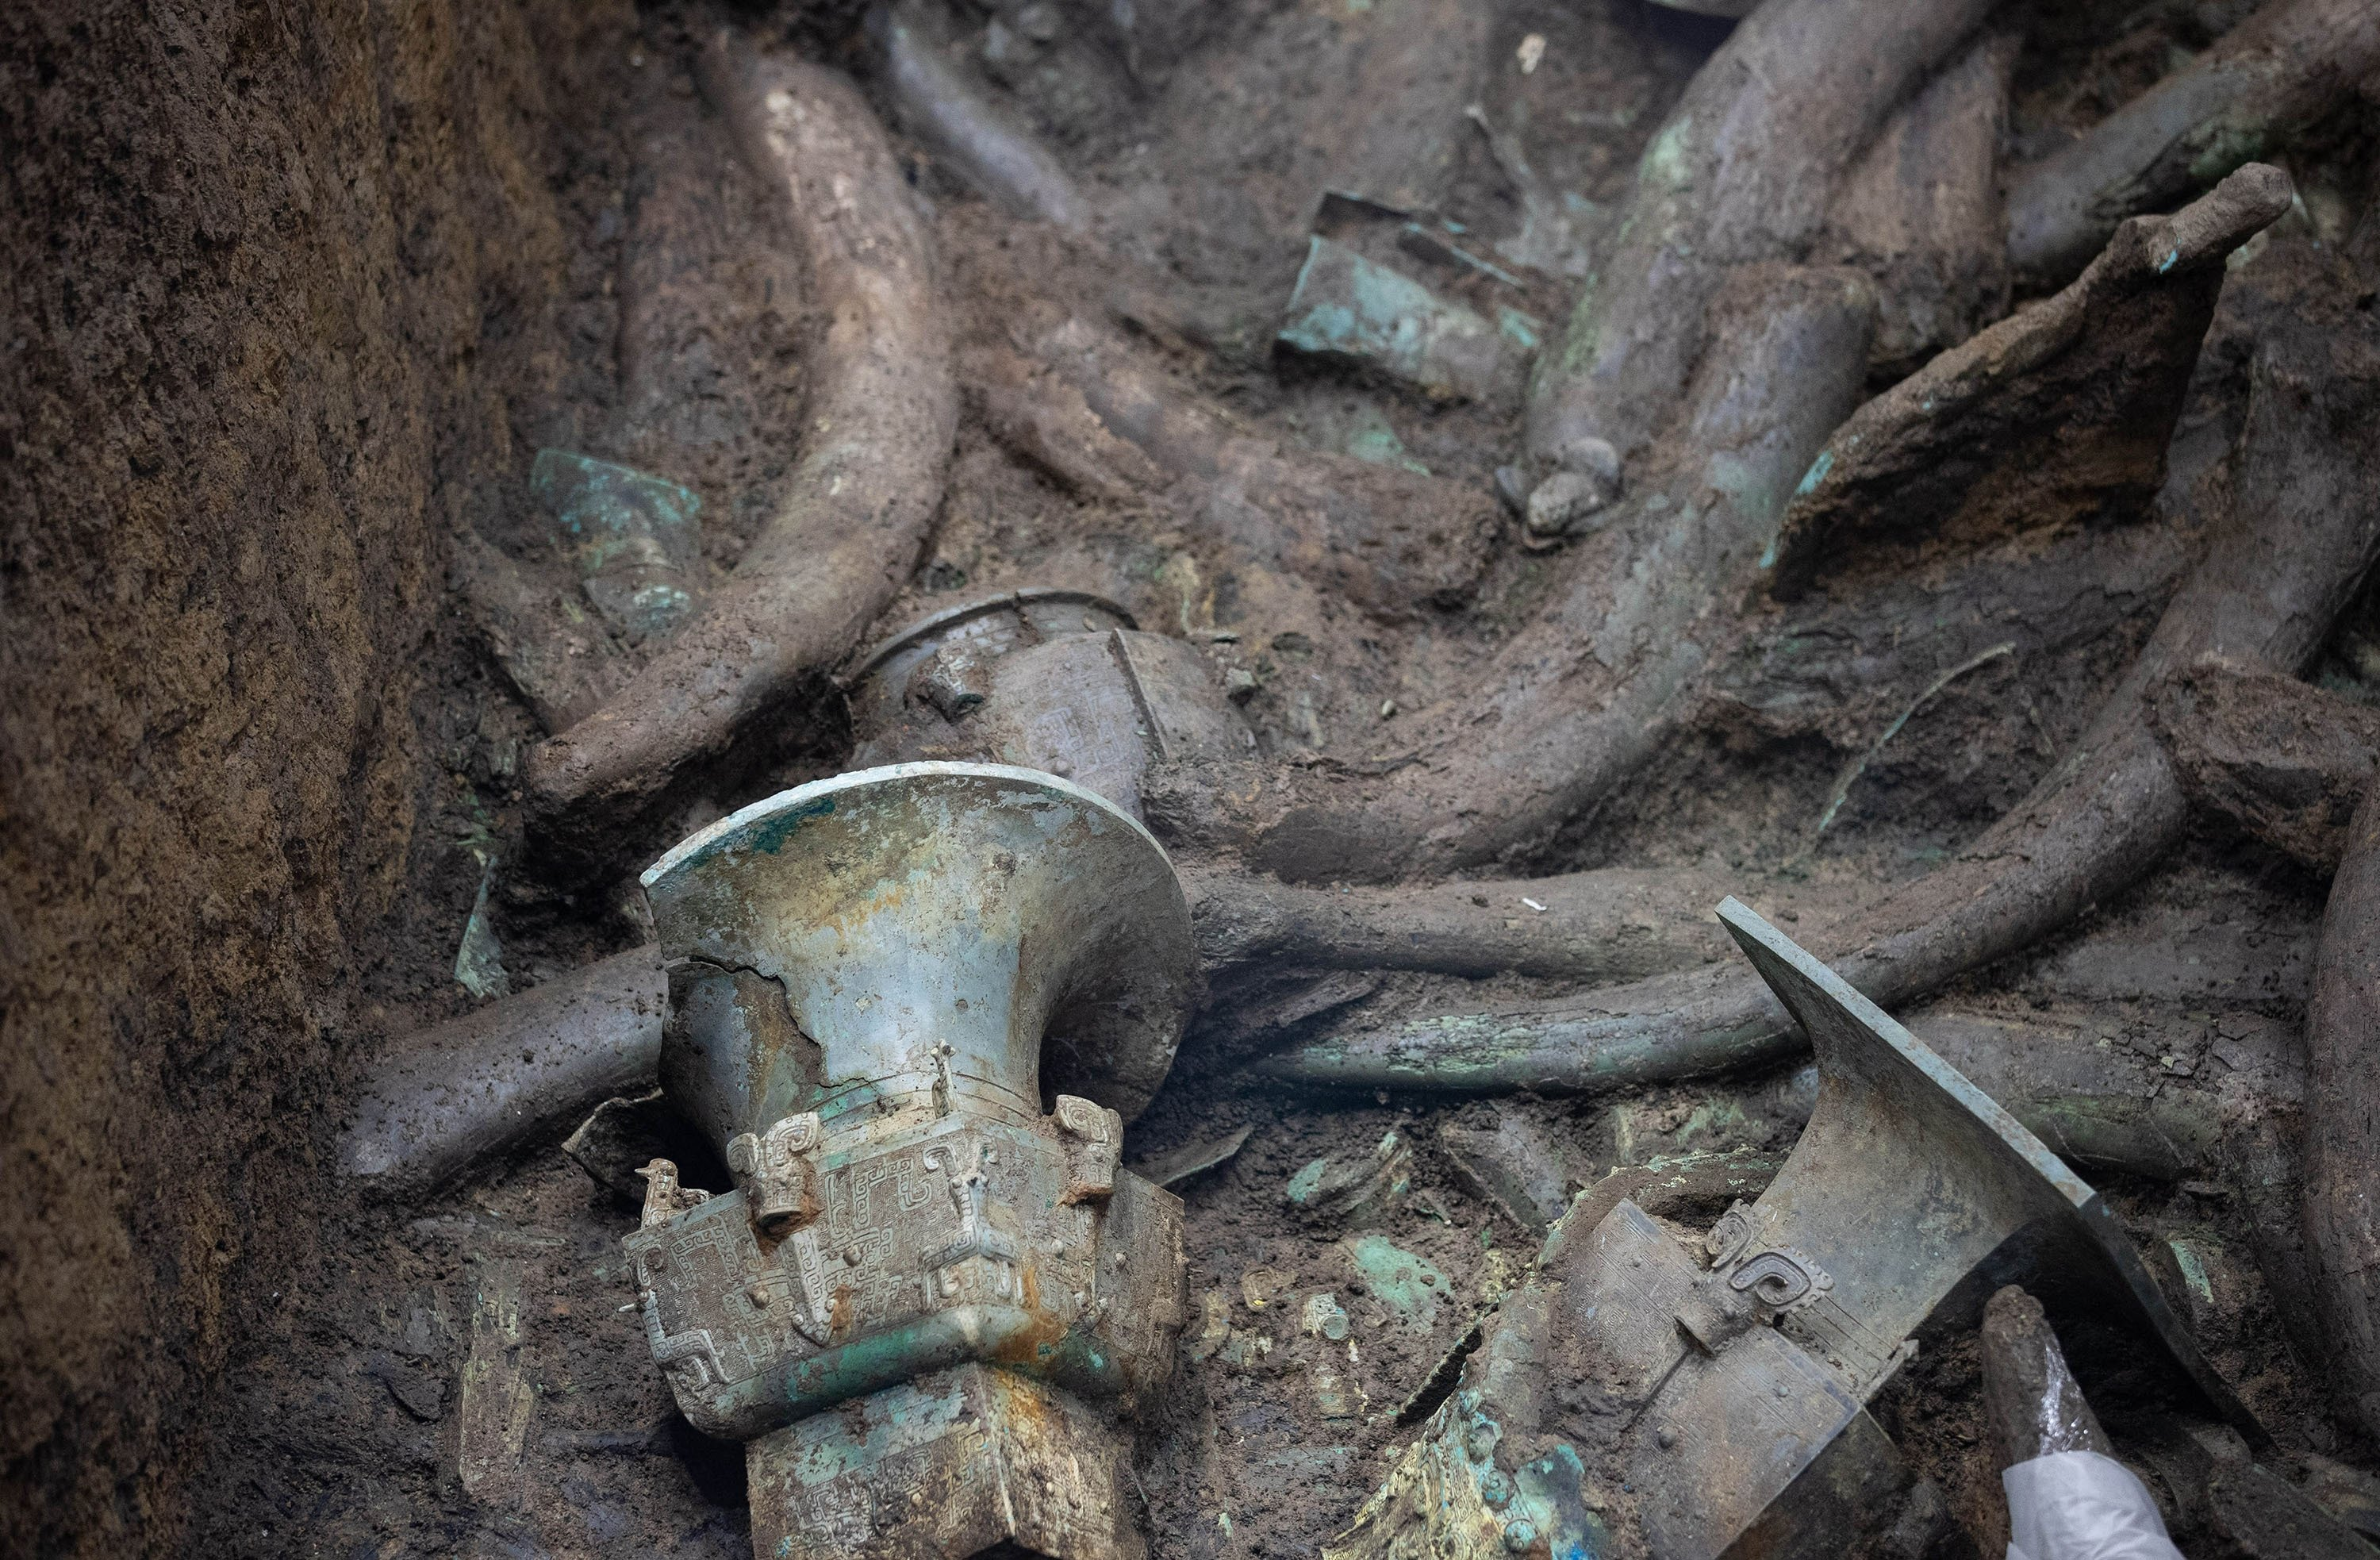 Cultural relics are unearthed at the No. 3 sacrificial pit of the Sanxingdui Ruins site in Deyang, Sichuan province, China, March 20, 2021. (Getty Images)